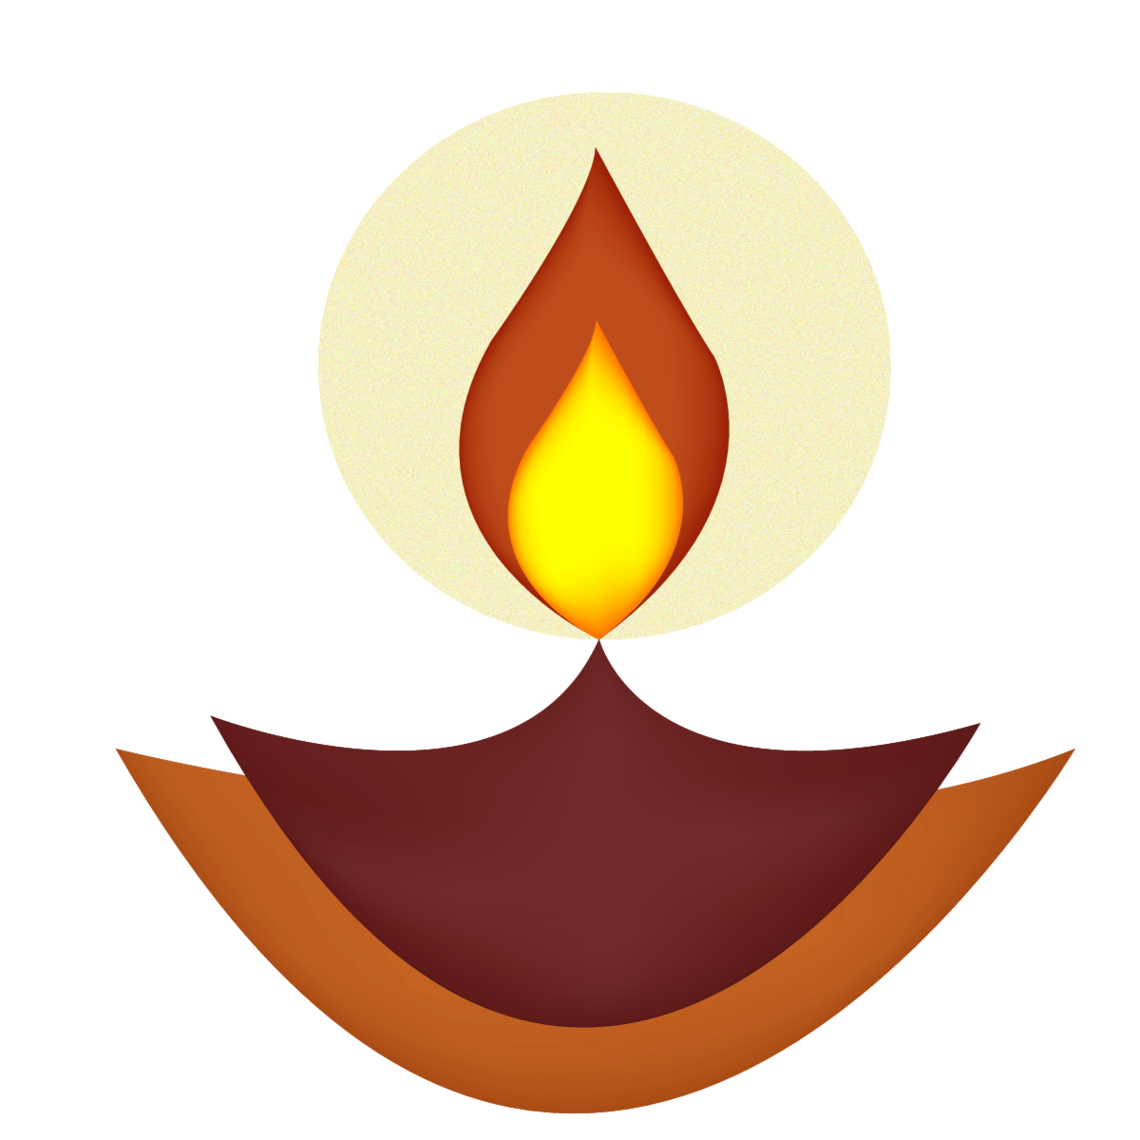 Oil Lamp clipart mud Lamp Diwali magiel Clipart Lamp